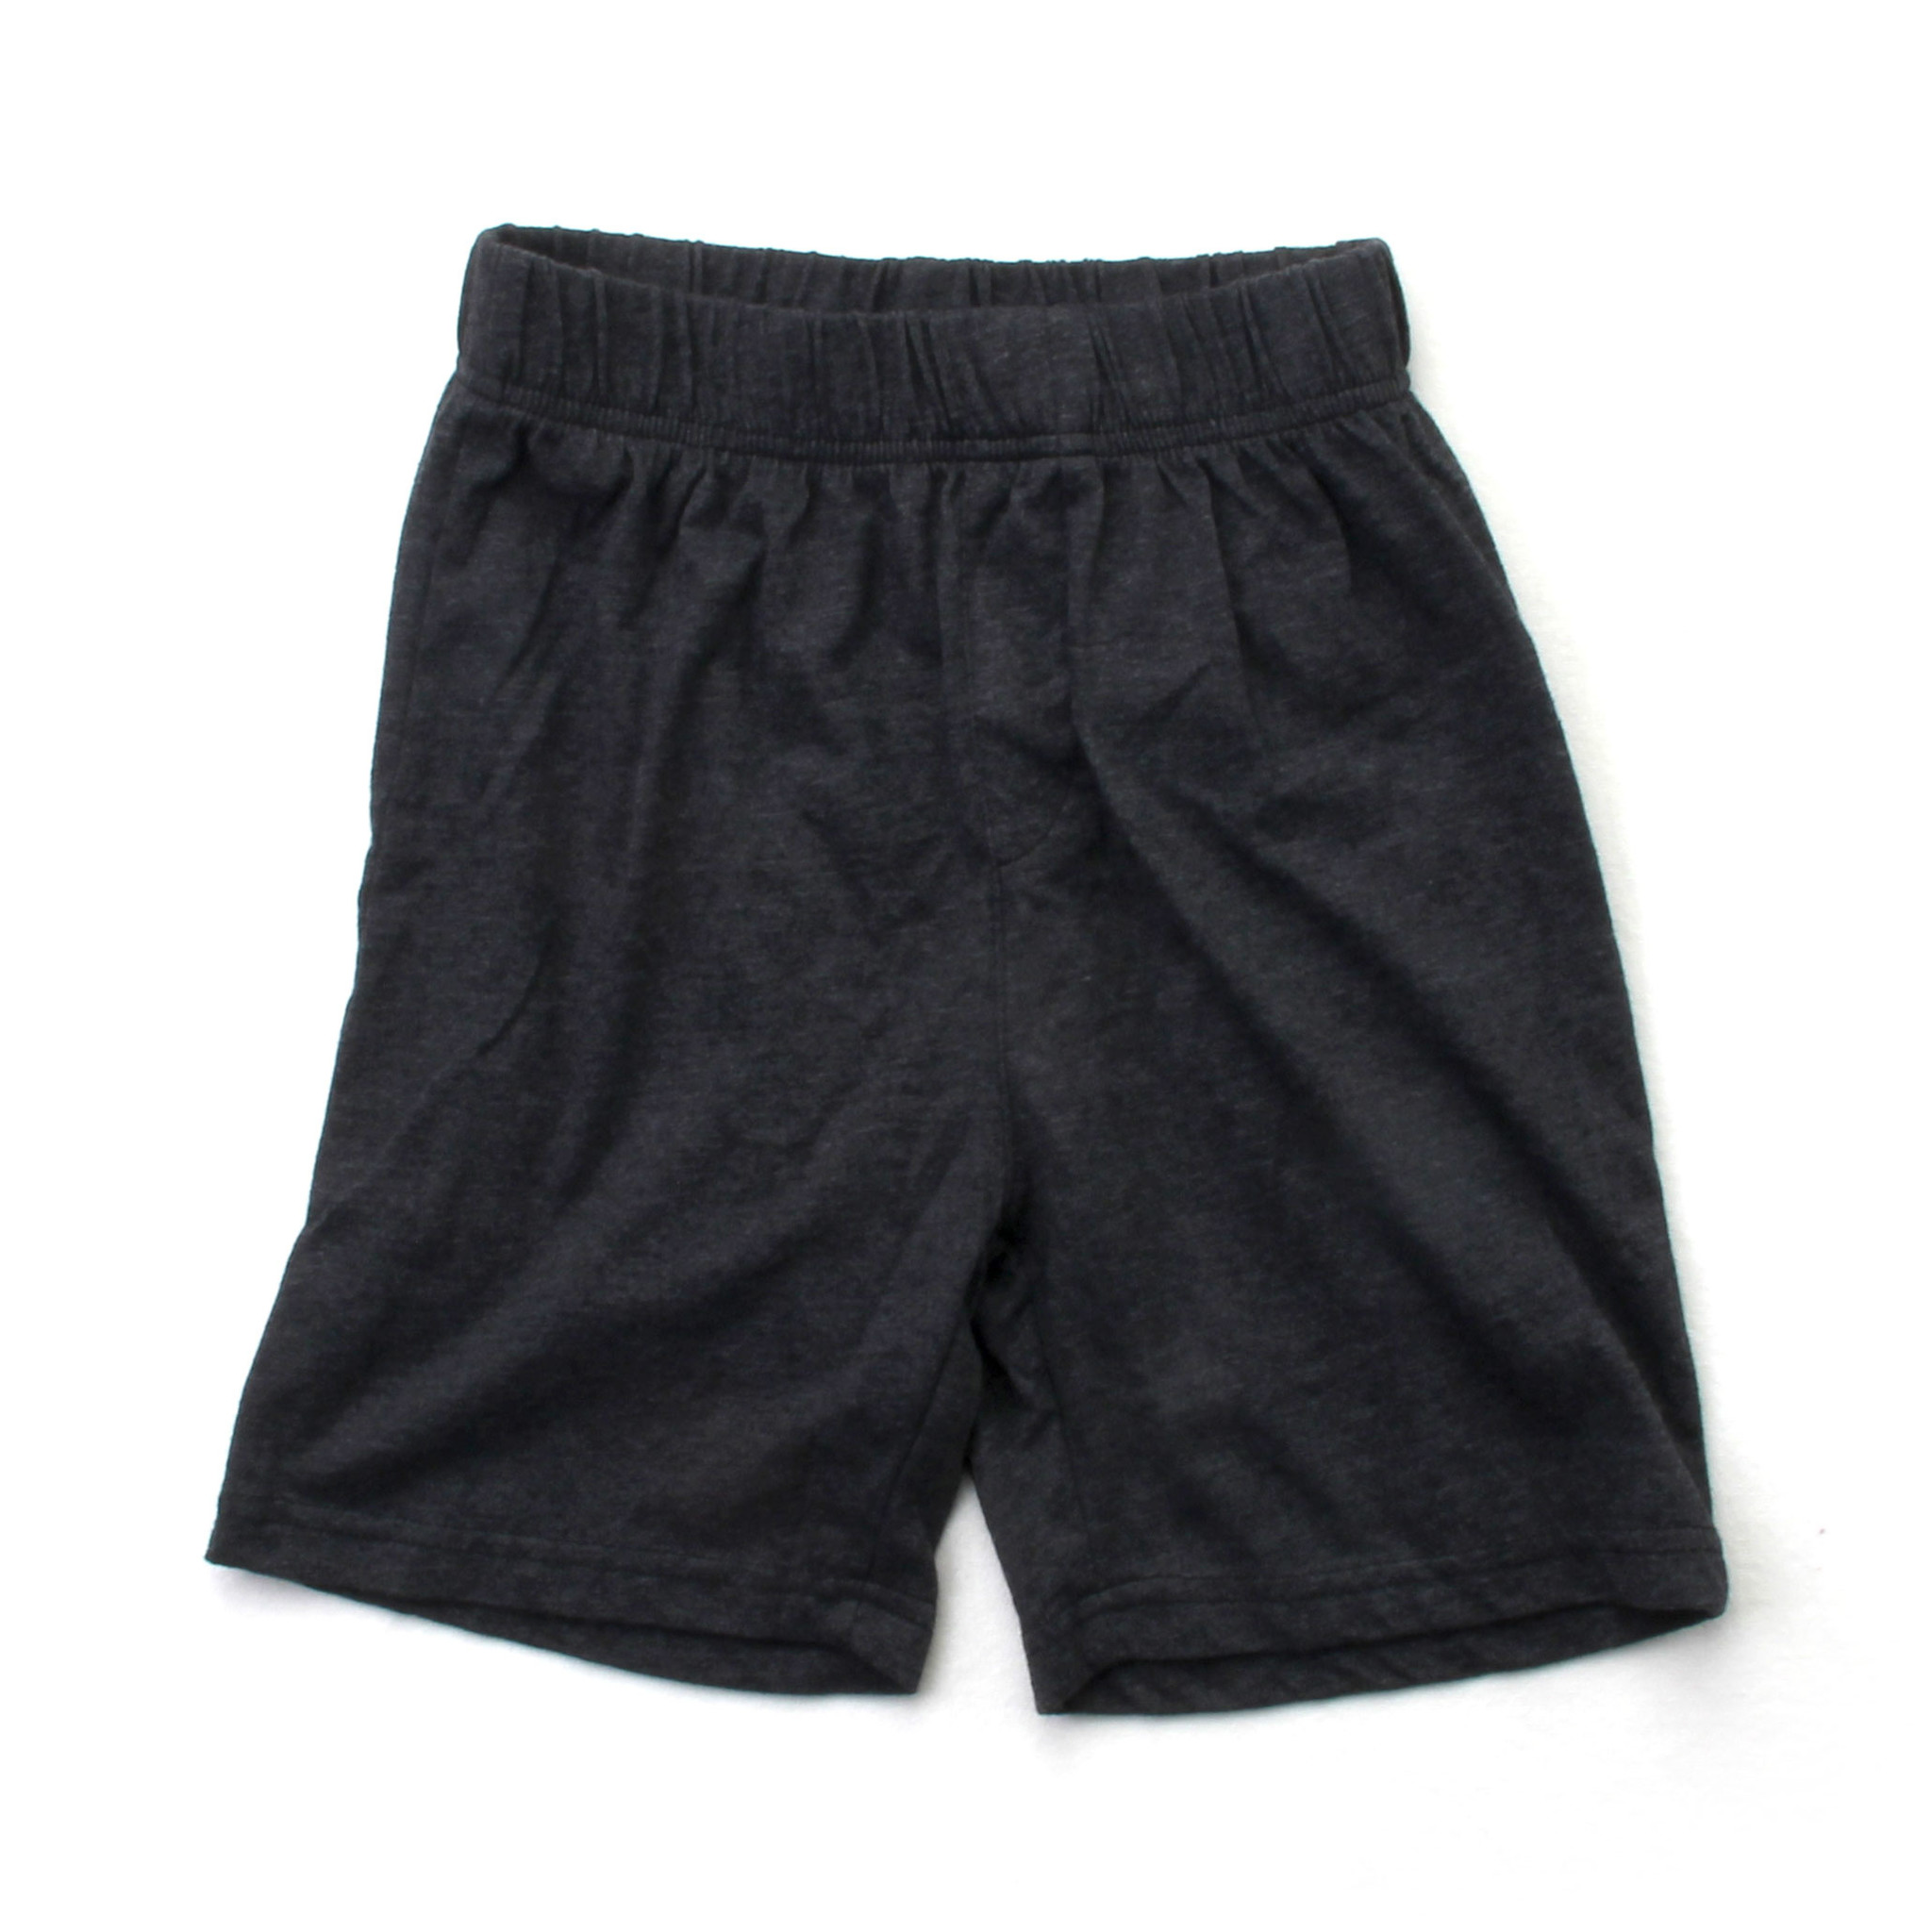 Wes And Willy Blended Jersey Short, Black